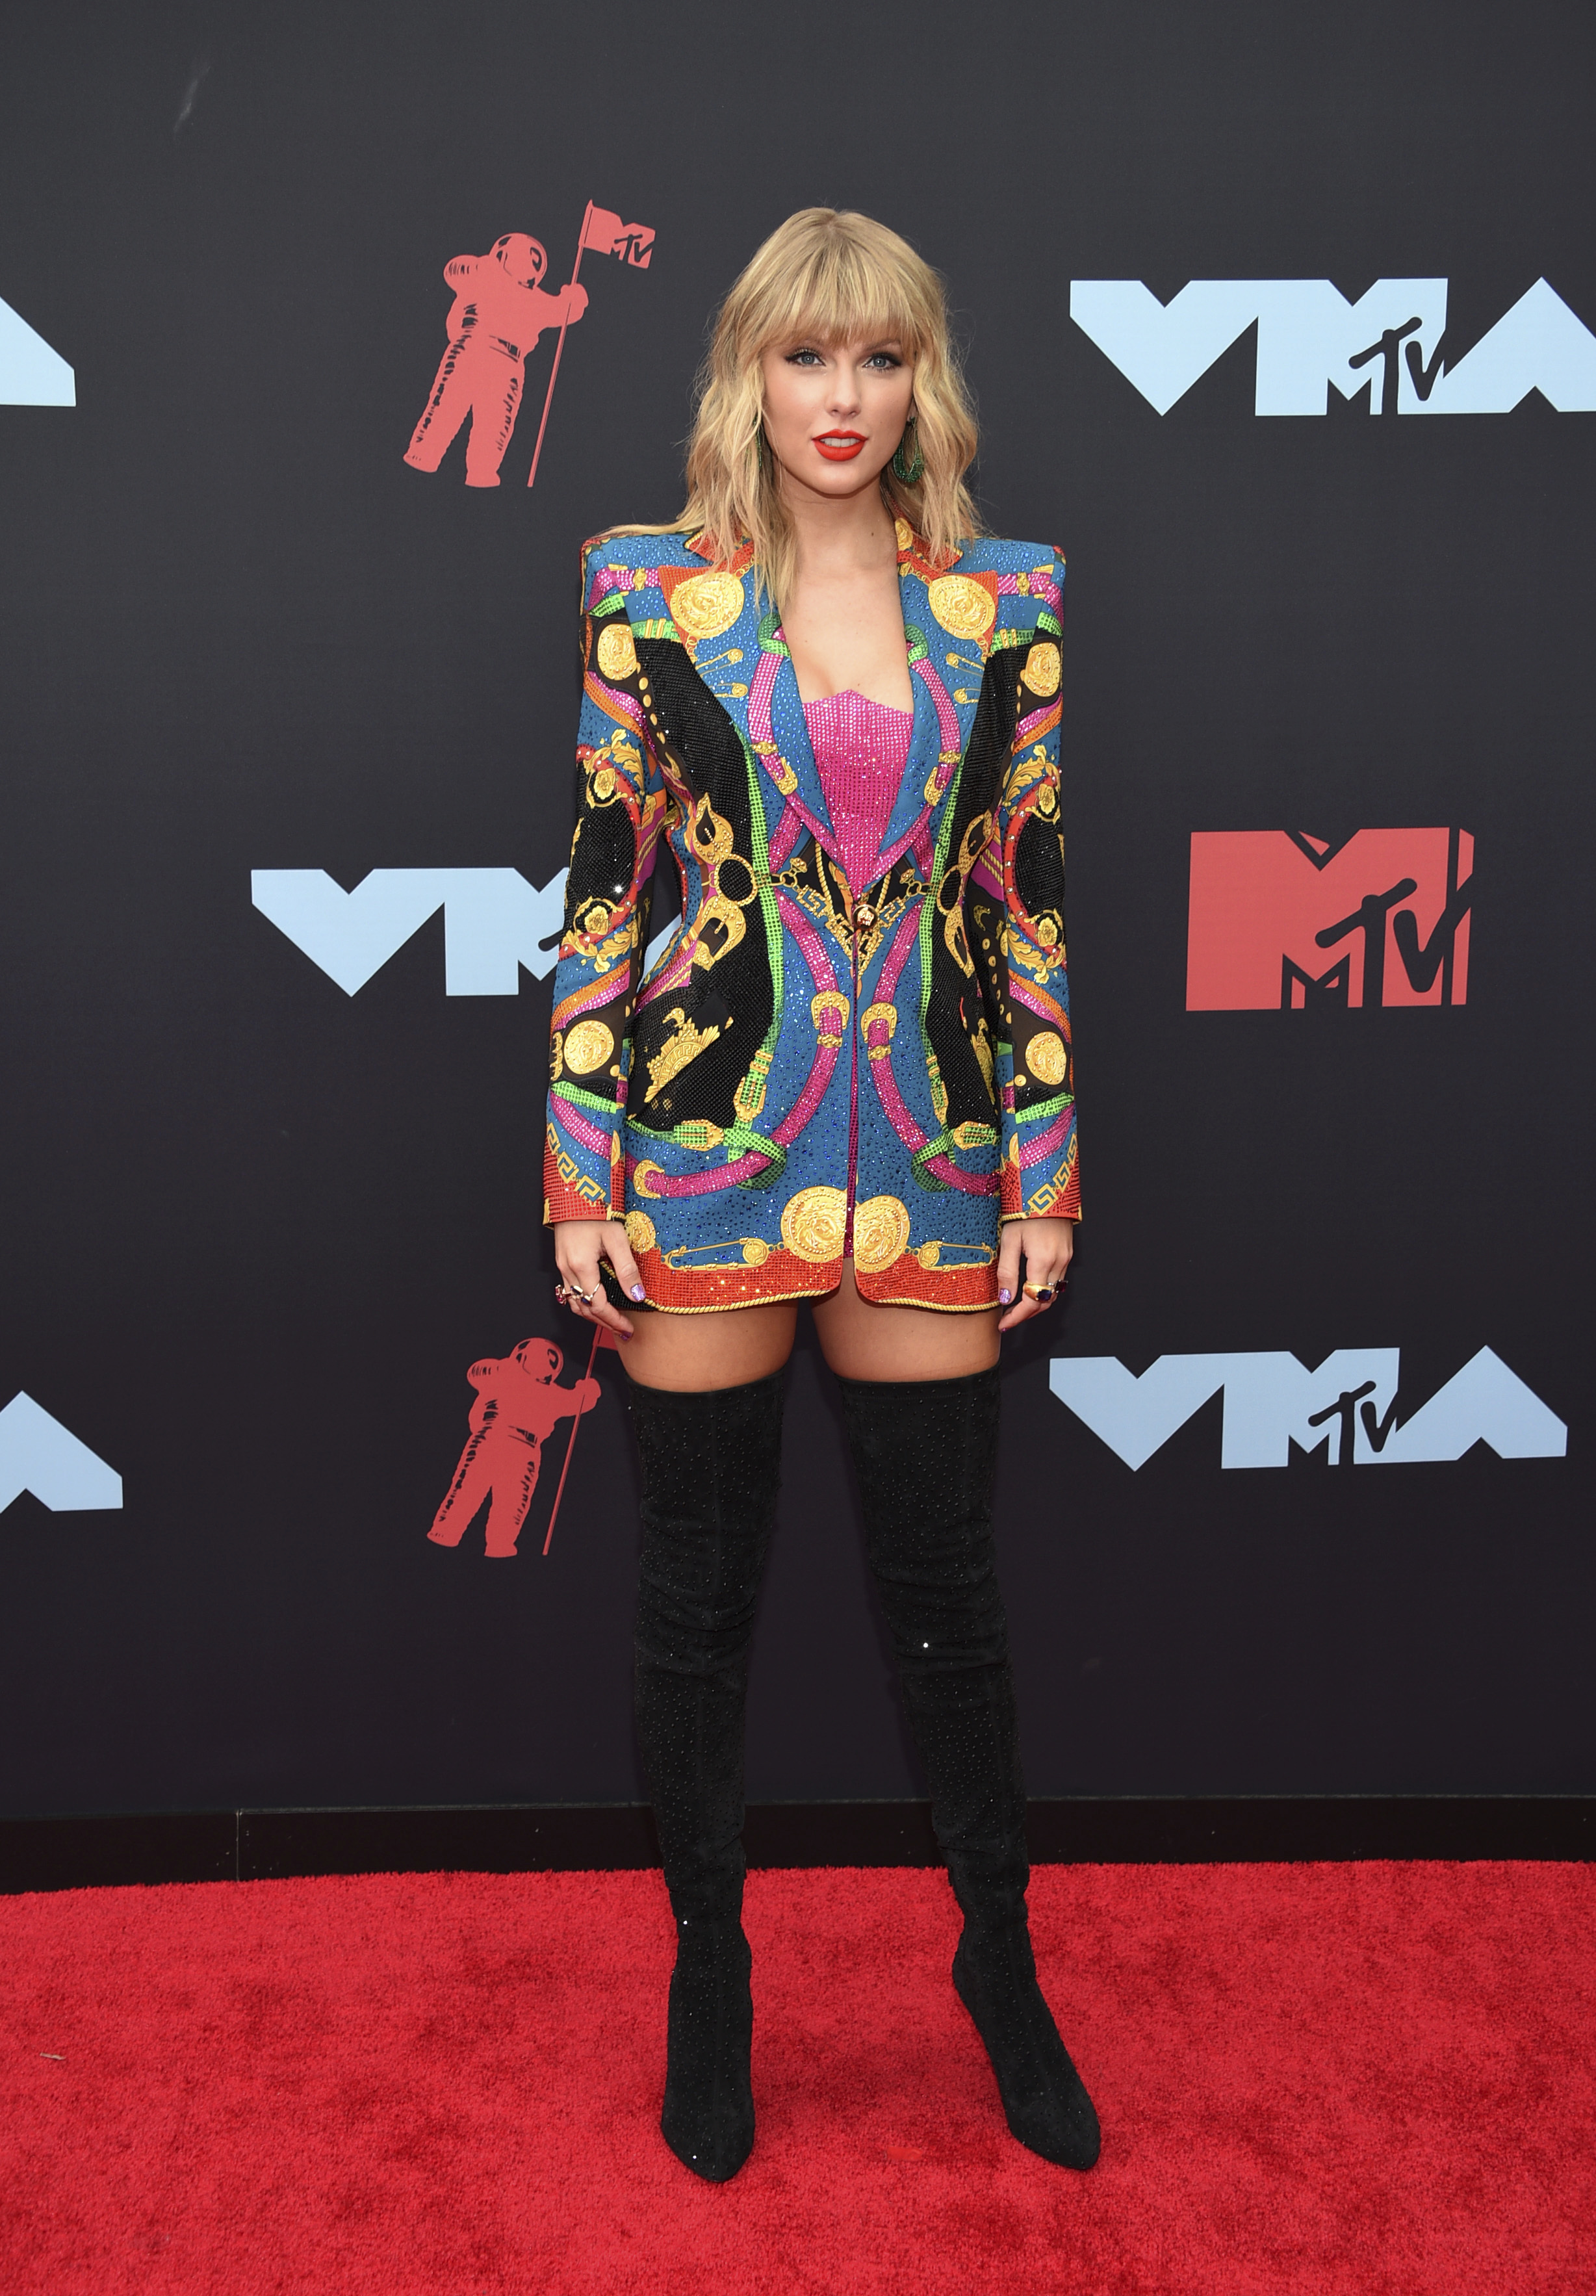 Red Carpet Photos From The 2019 Mtv Video Music Awards